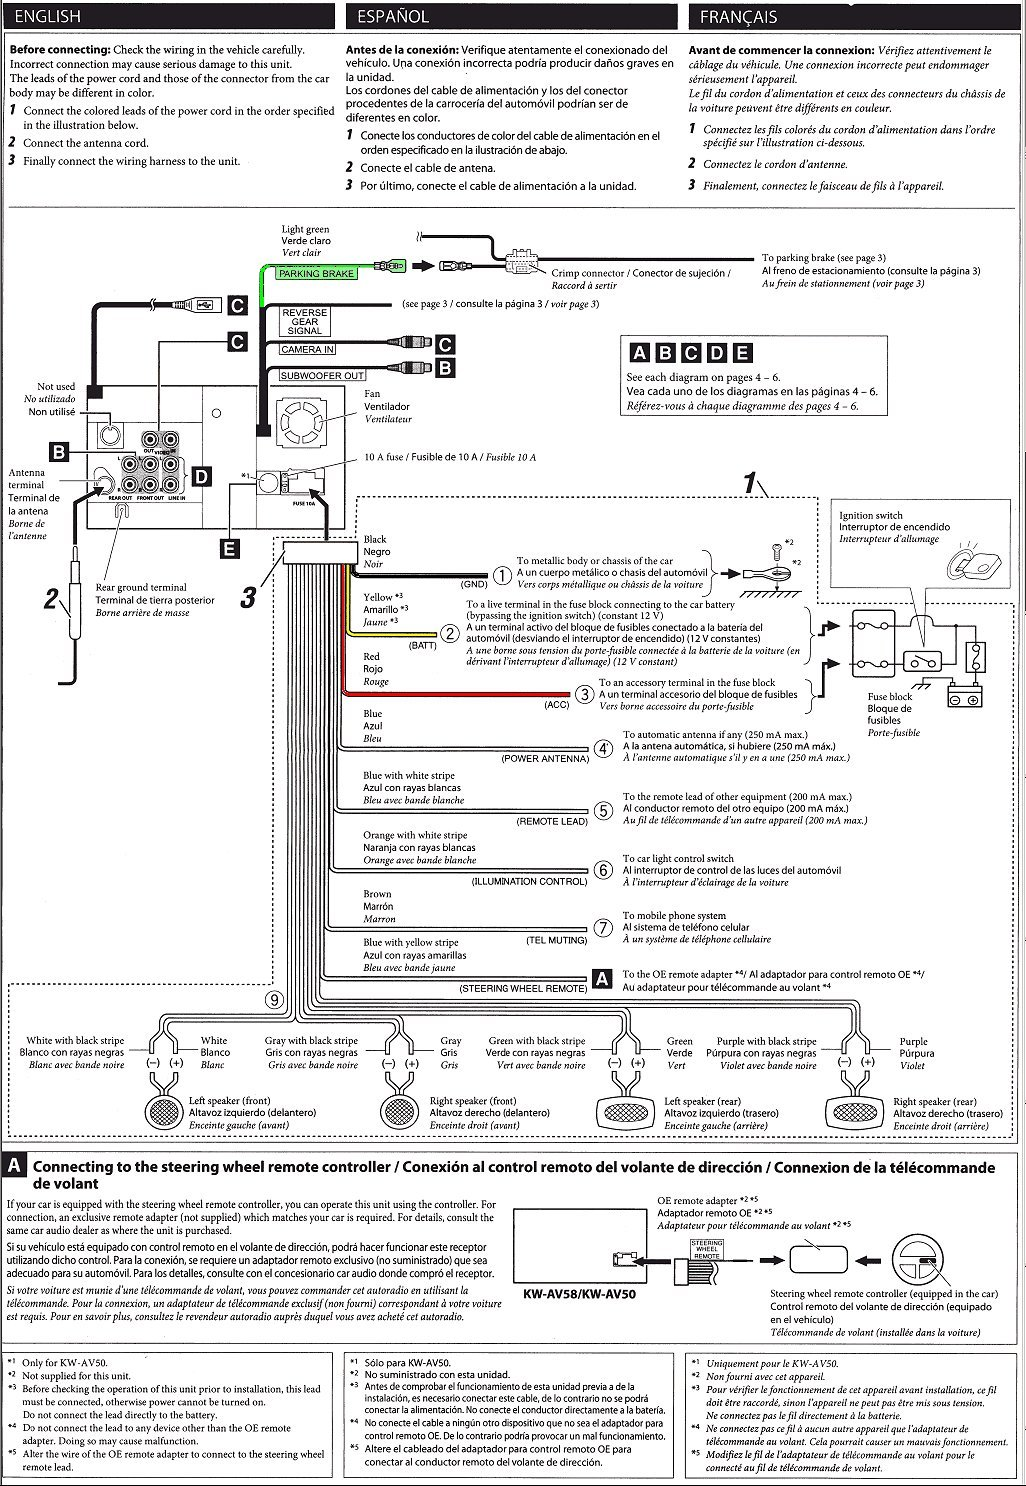 the brake wire where to you it to hook it up to your please reference below wiring diagram graphic ask your own car electronics question